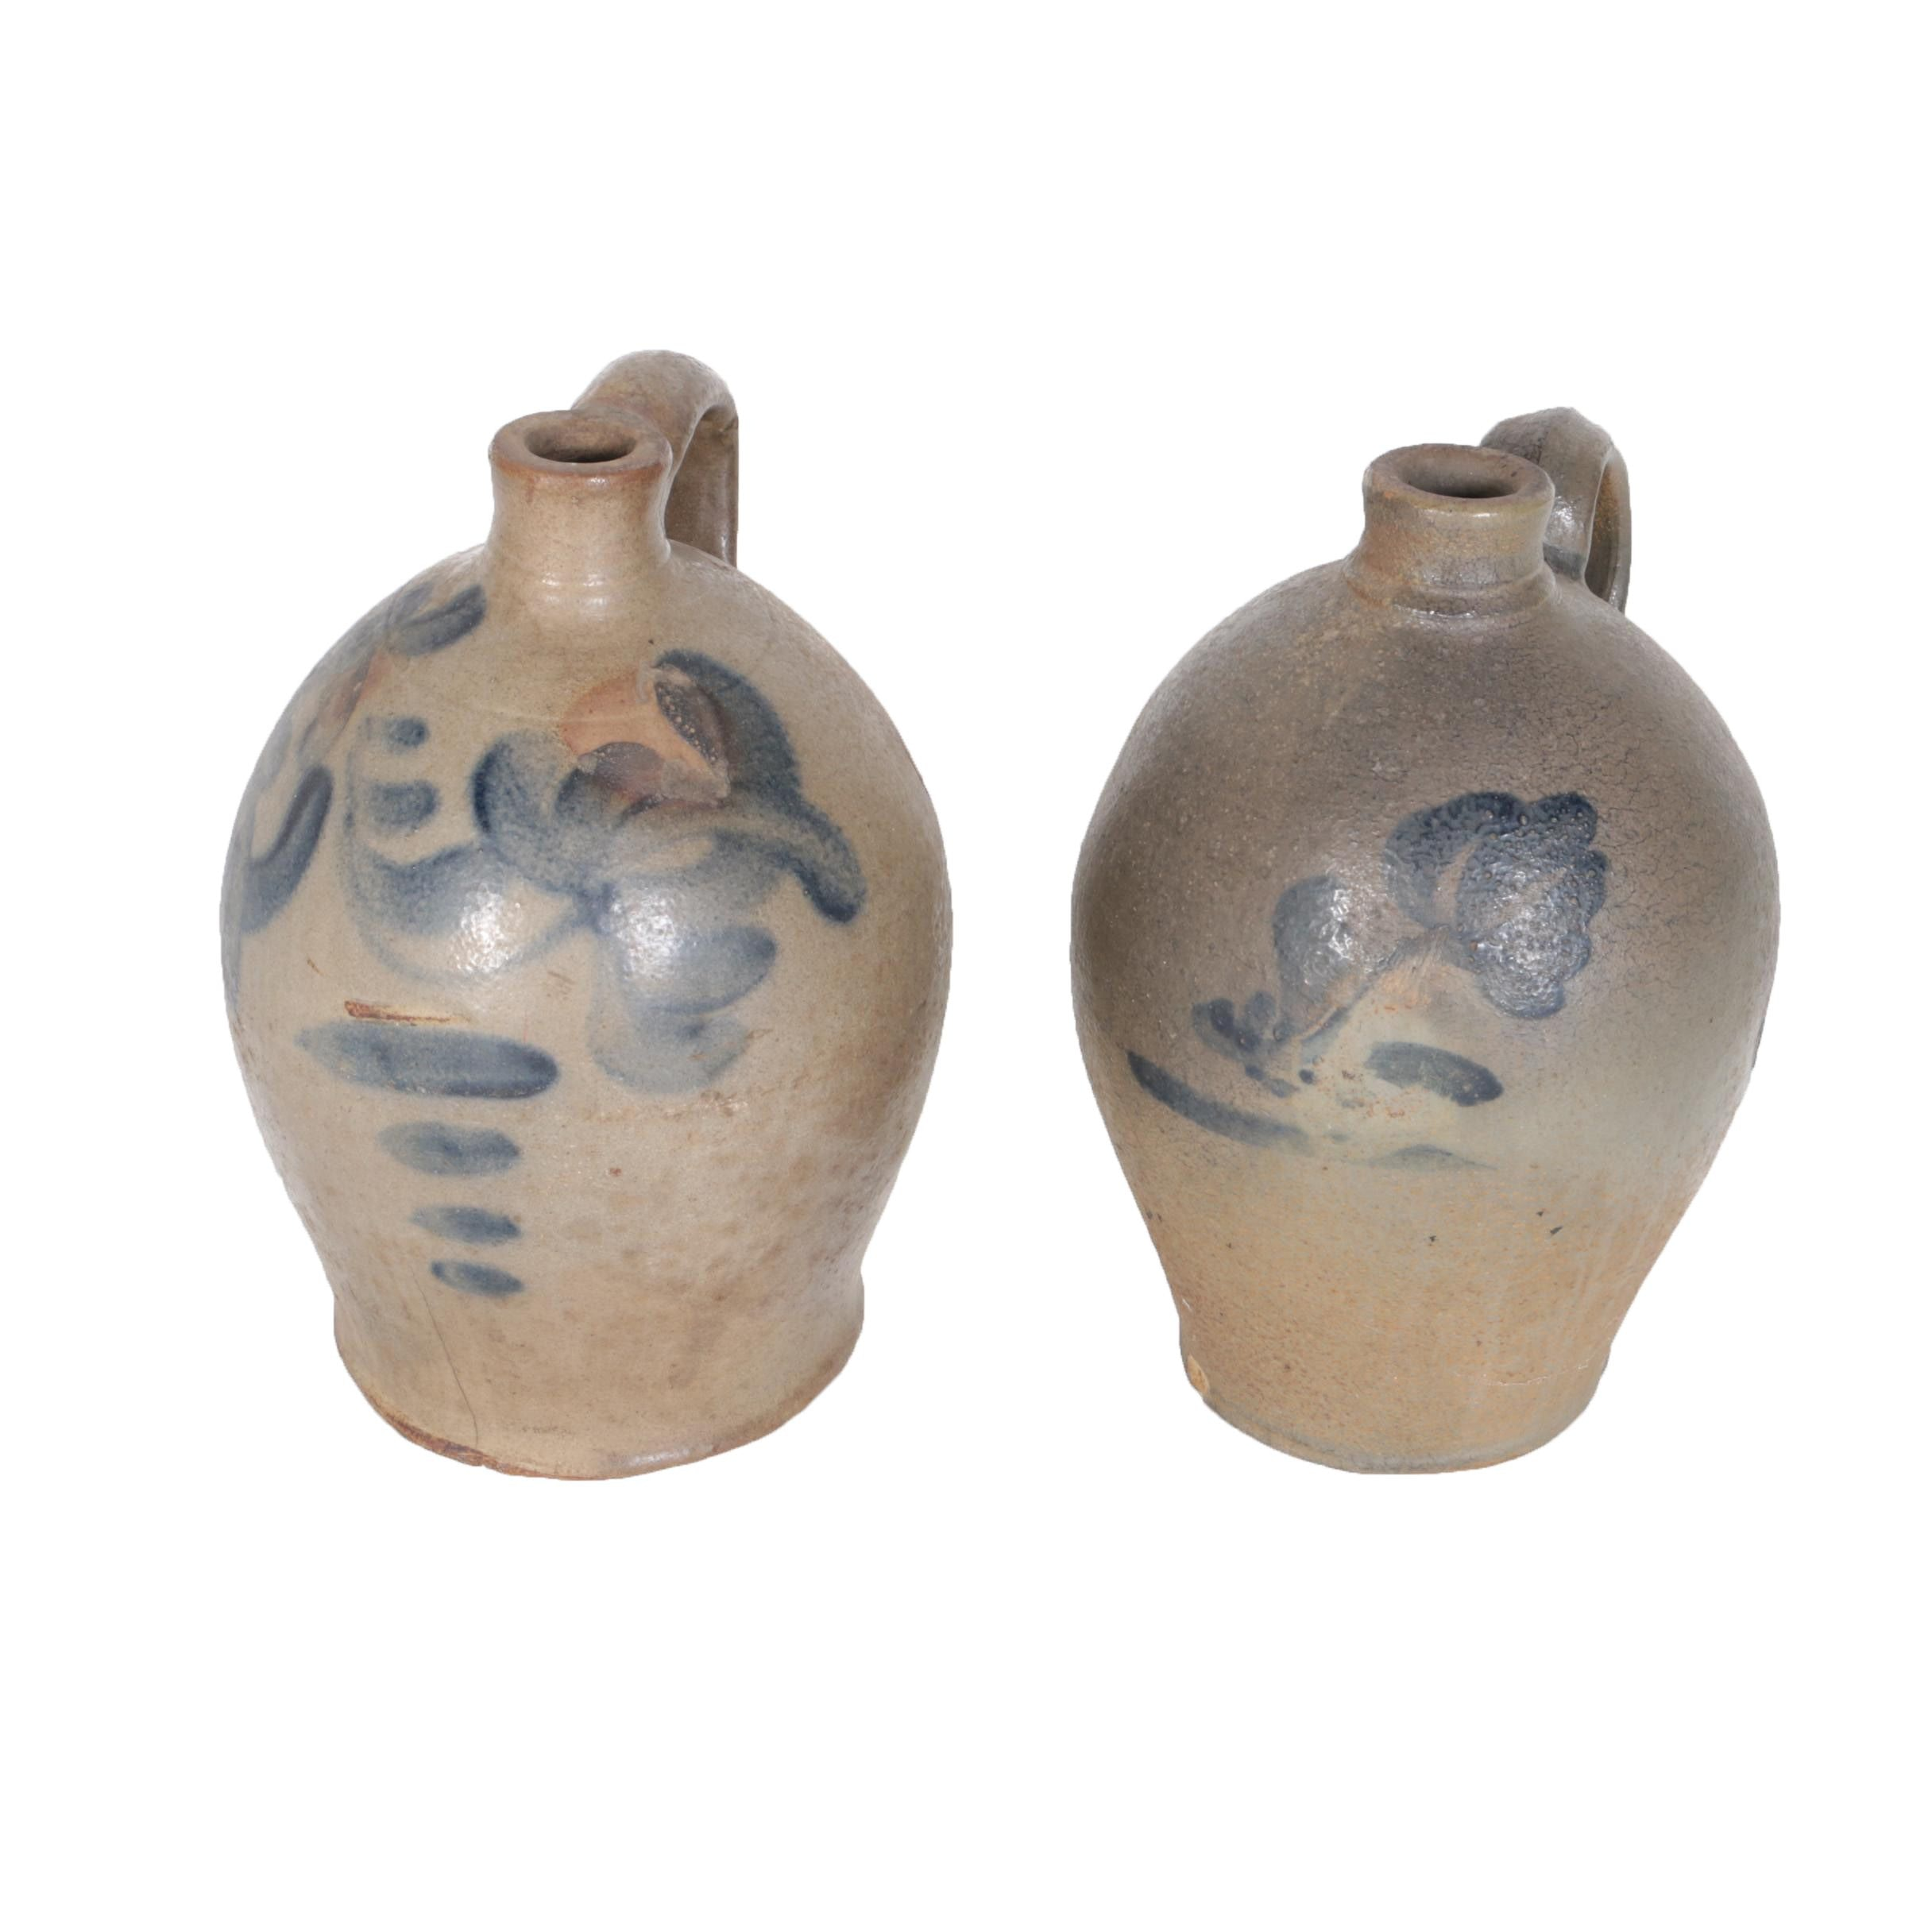 Two Stoneware Crocks with Cobalt Decoration, 19th-Century